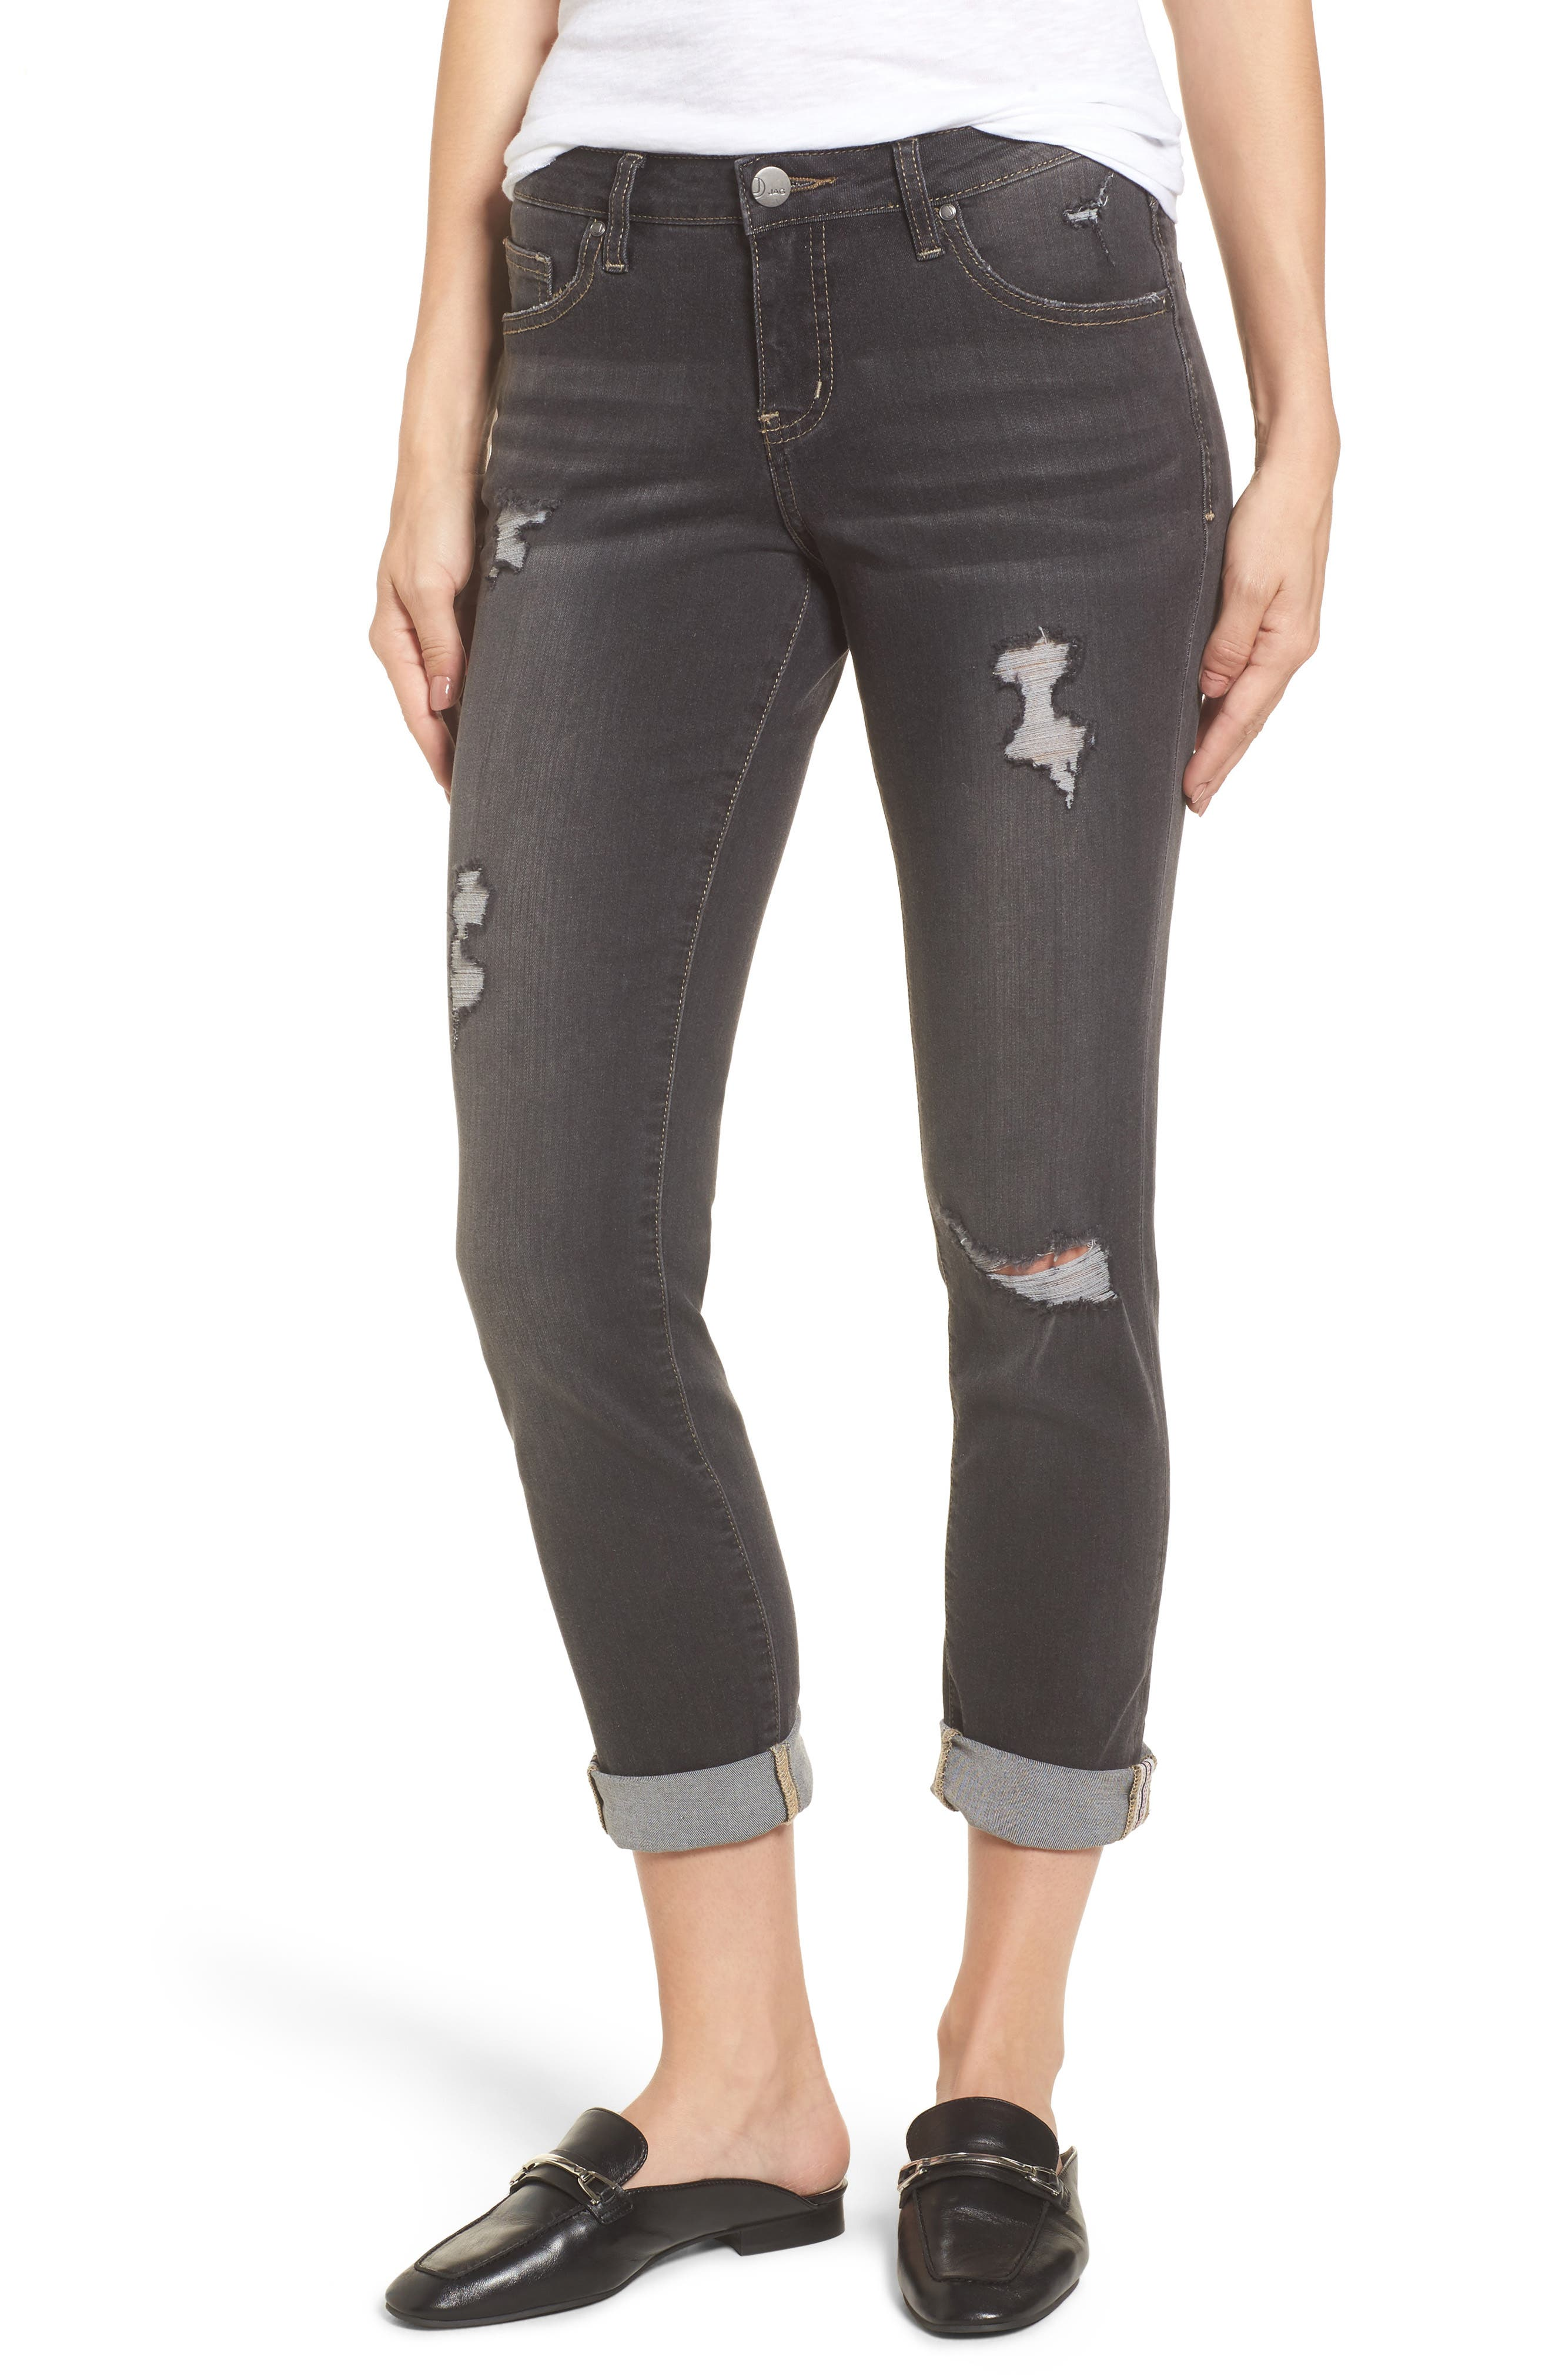 Carter Cuffed Girlfriend Jeans,                             Main thumbnail 1, color,                             DARK GREY